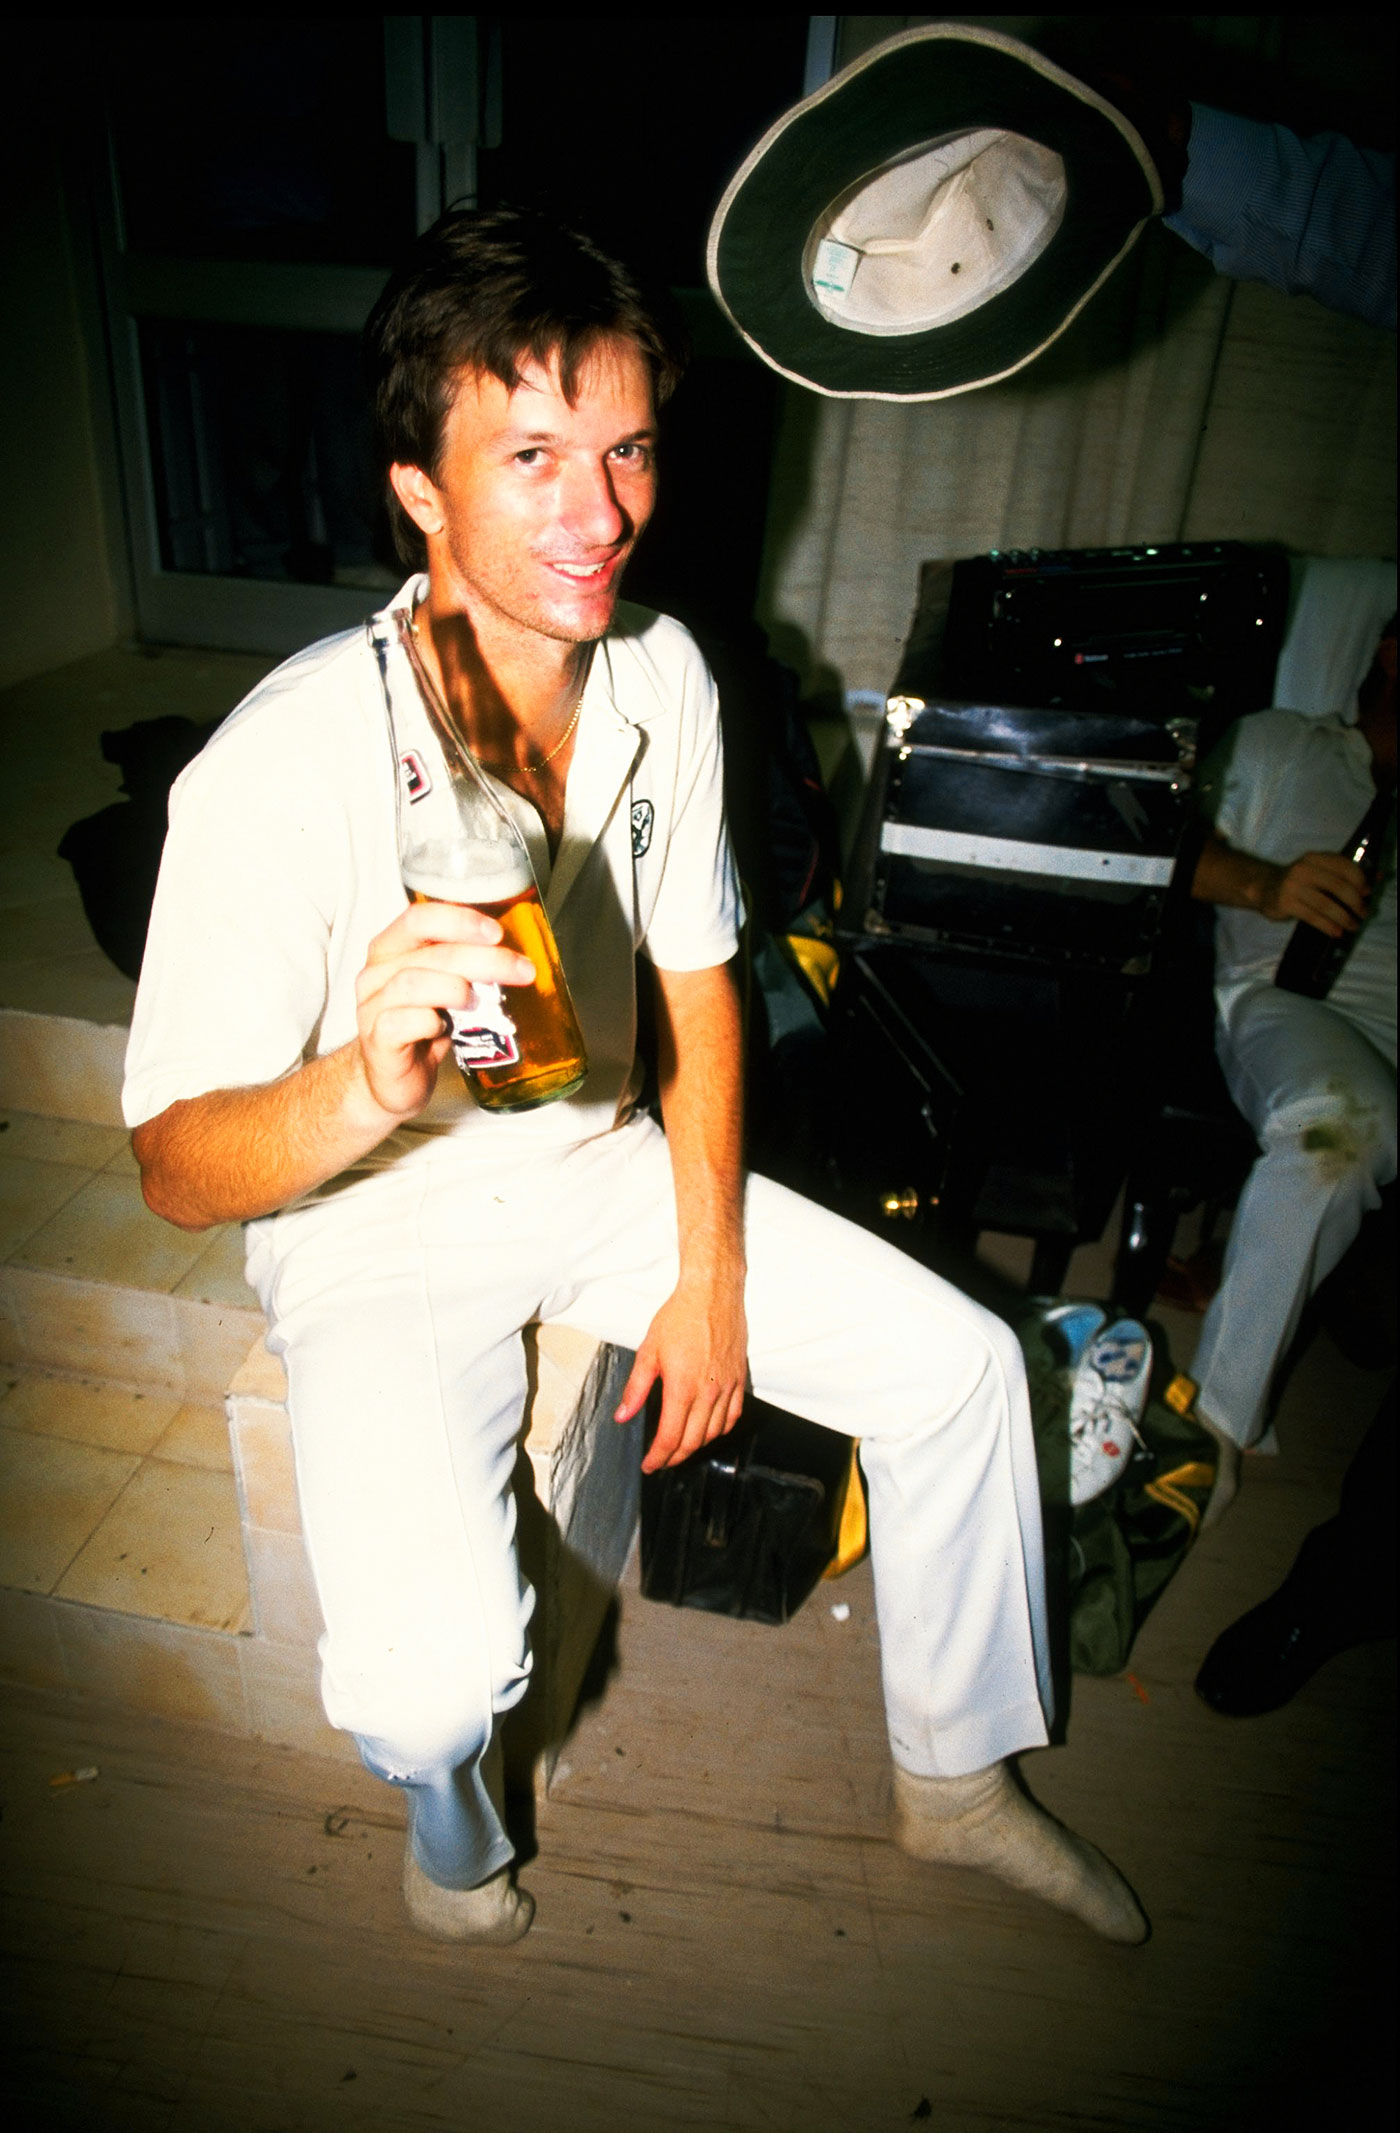 Steve Waugh enjoys a beer after the World Cup final, Australia v England, World Cup, final, Kolkata, November 8, 1987